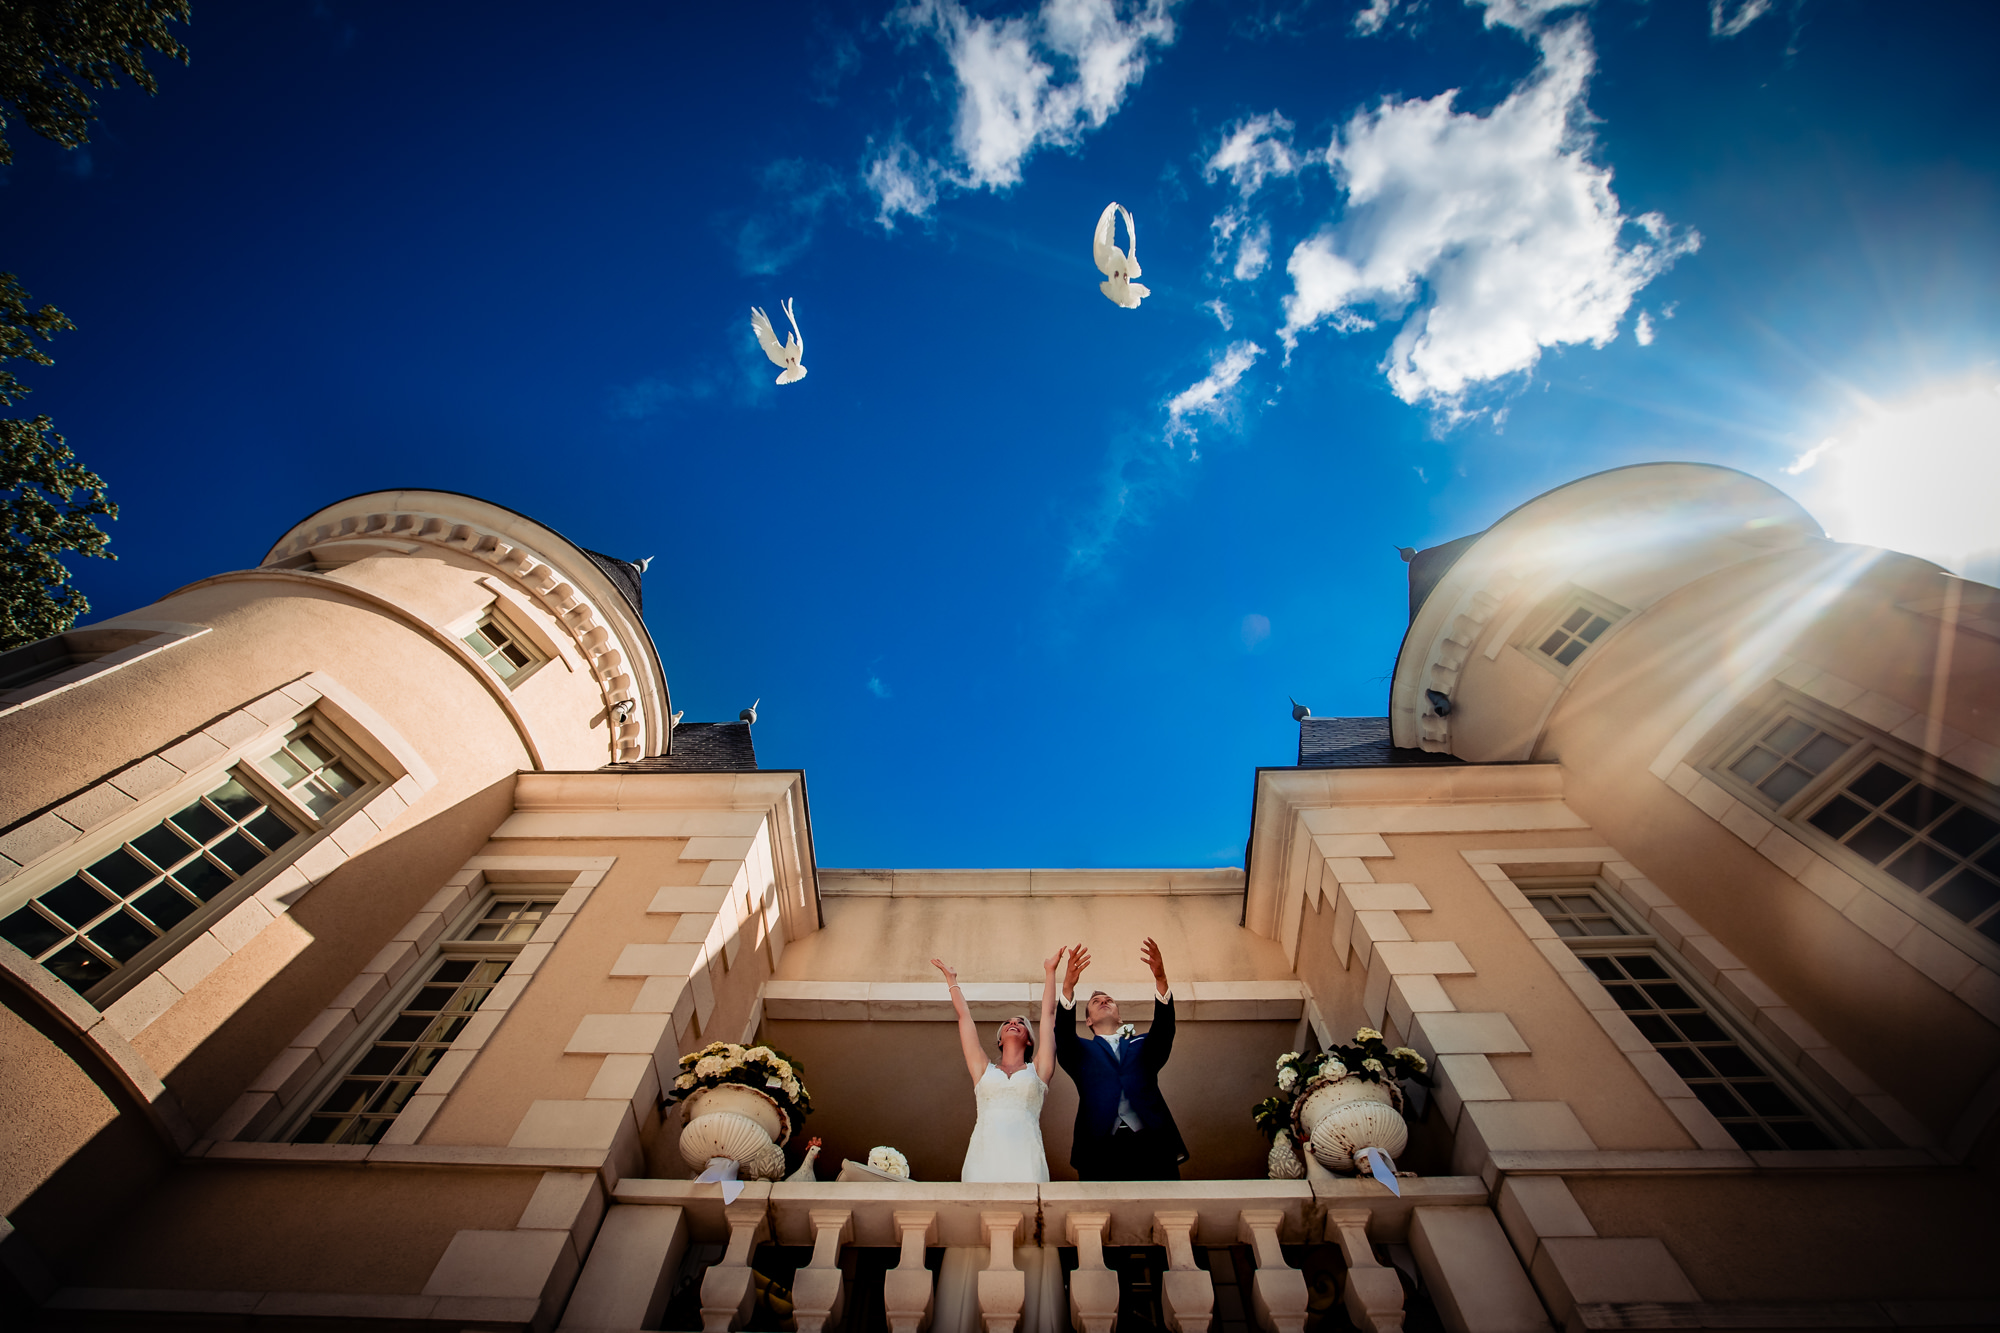 Bride and groom release doves from balcony, by Eppel Fotographie